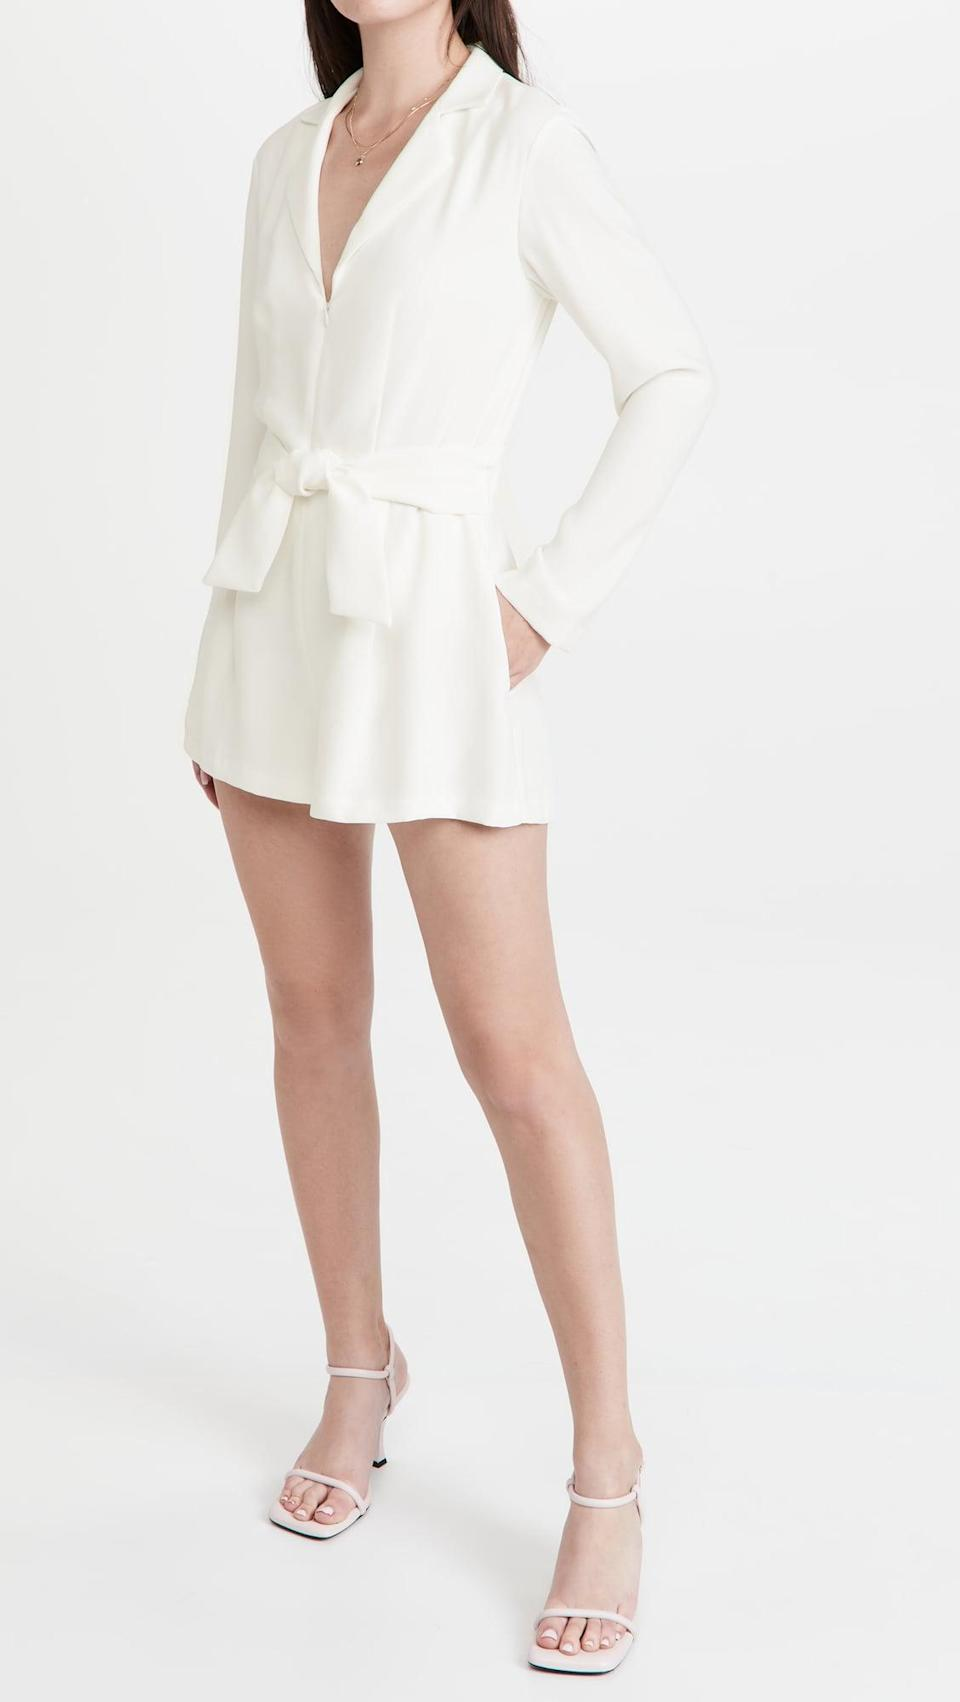 <p>This sleek <span>Amanda Uprichard Mayla Romper</span> ($242) is fun, and perfect for a summer night out. I love it with strappy sandals.</p>